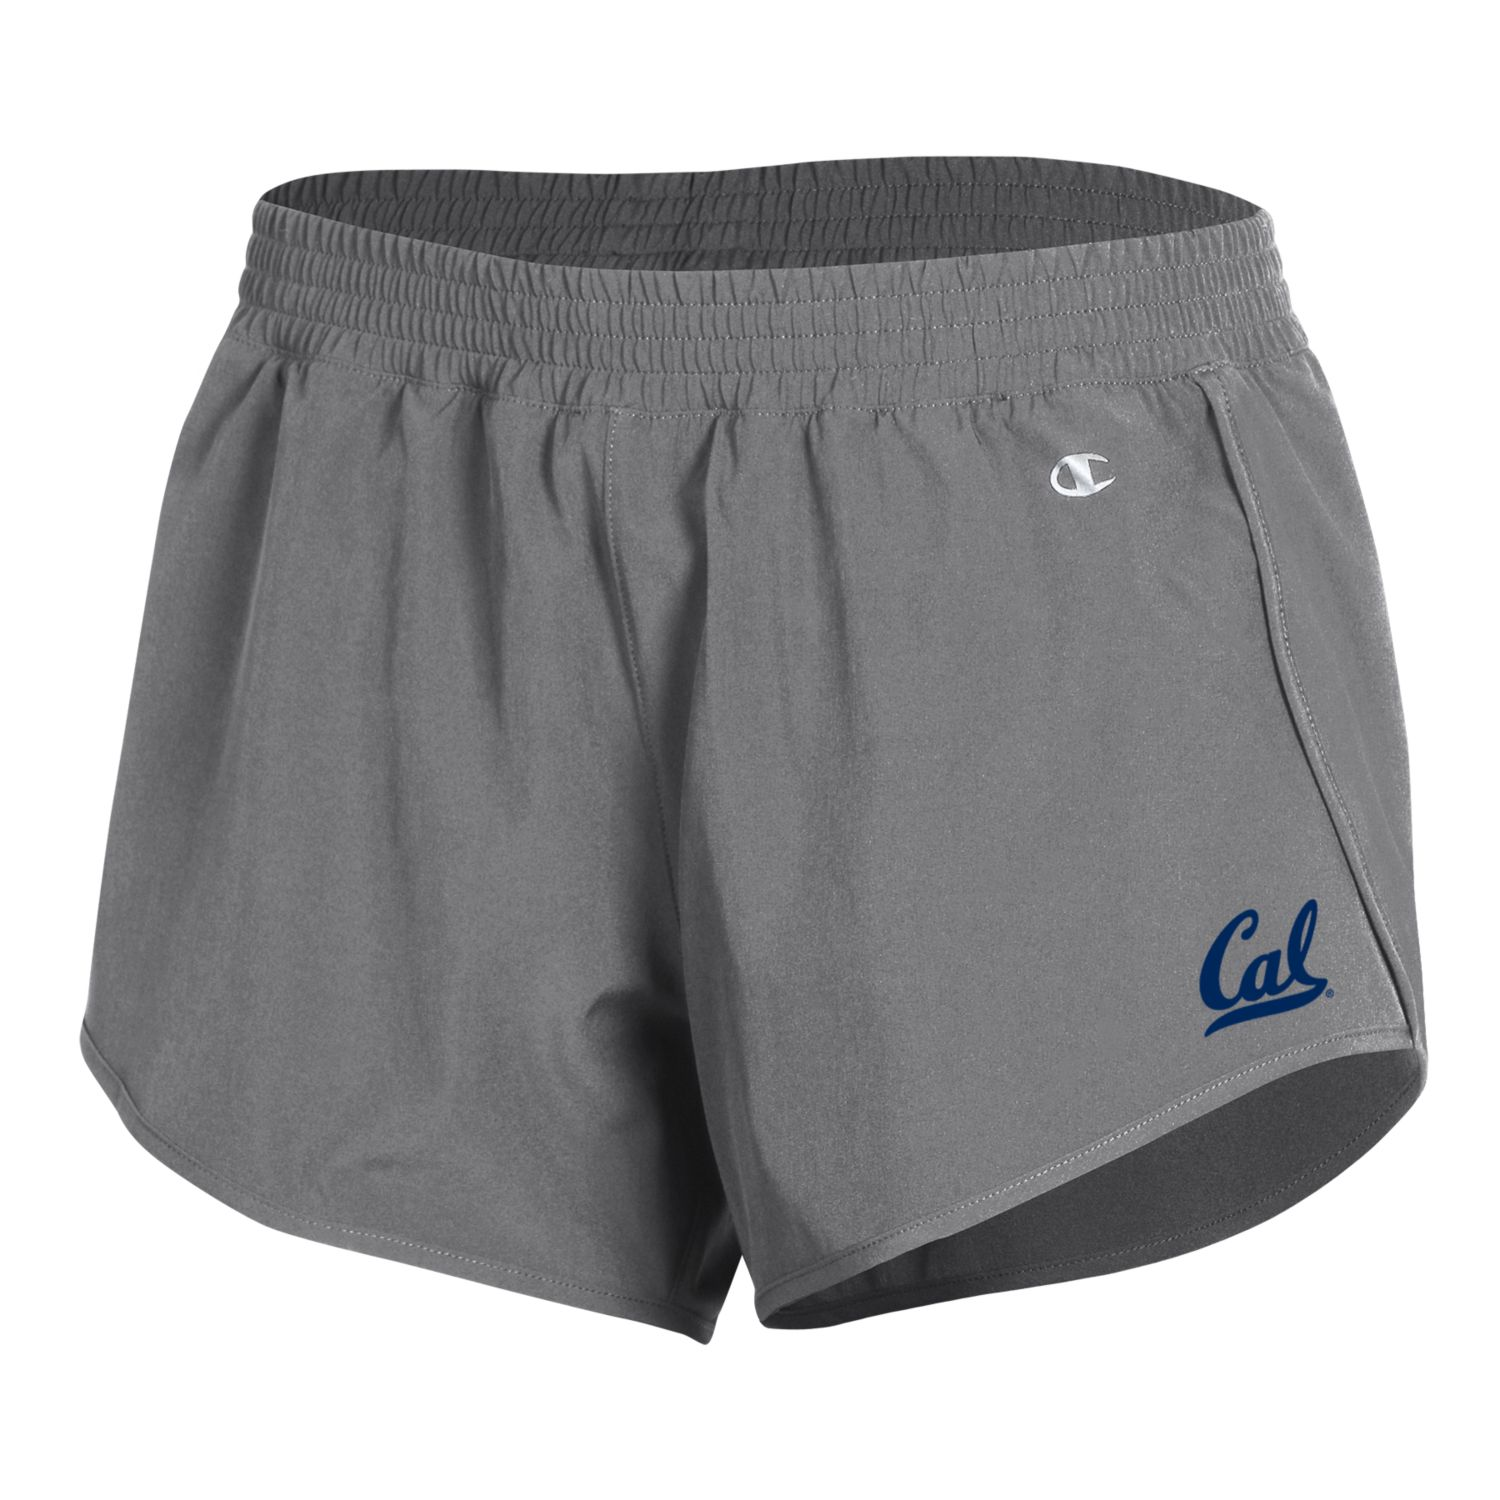 Cal Bears Champion Women's Woven Shorts